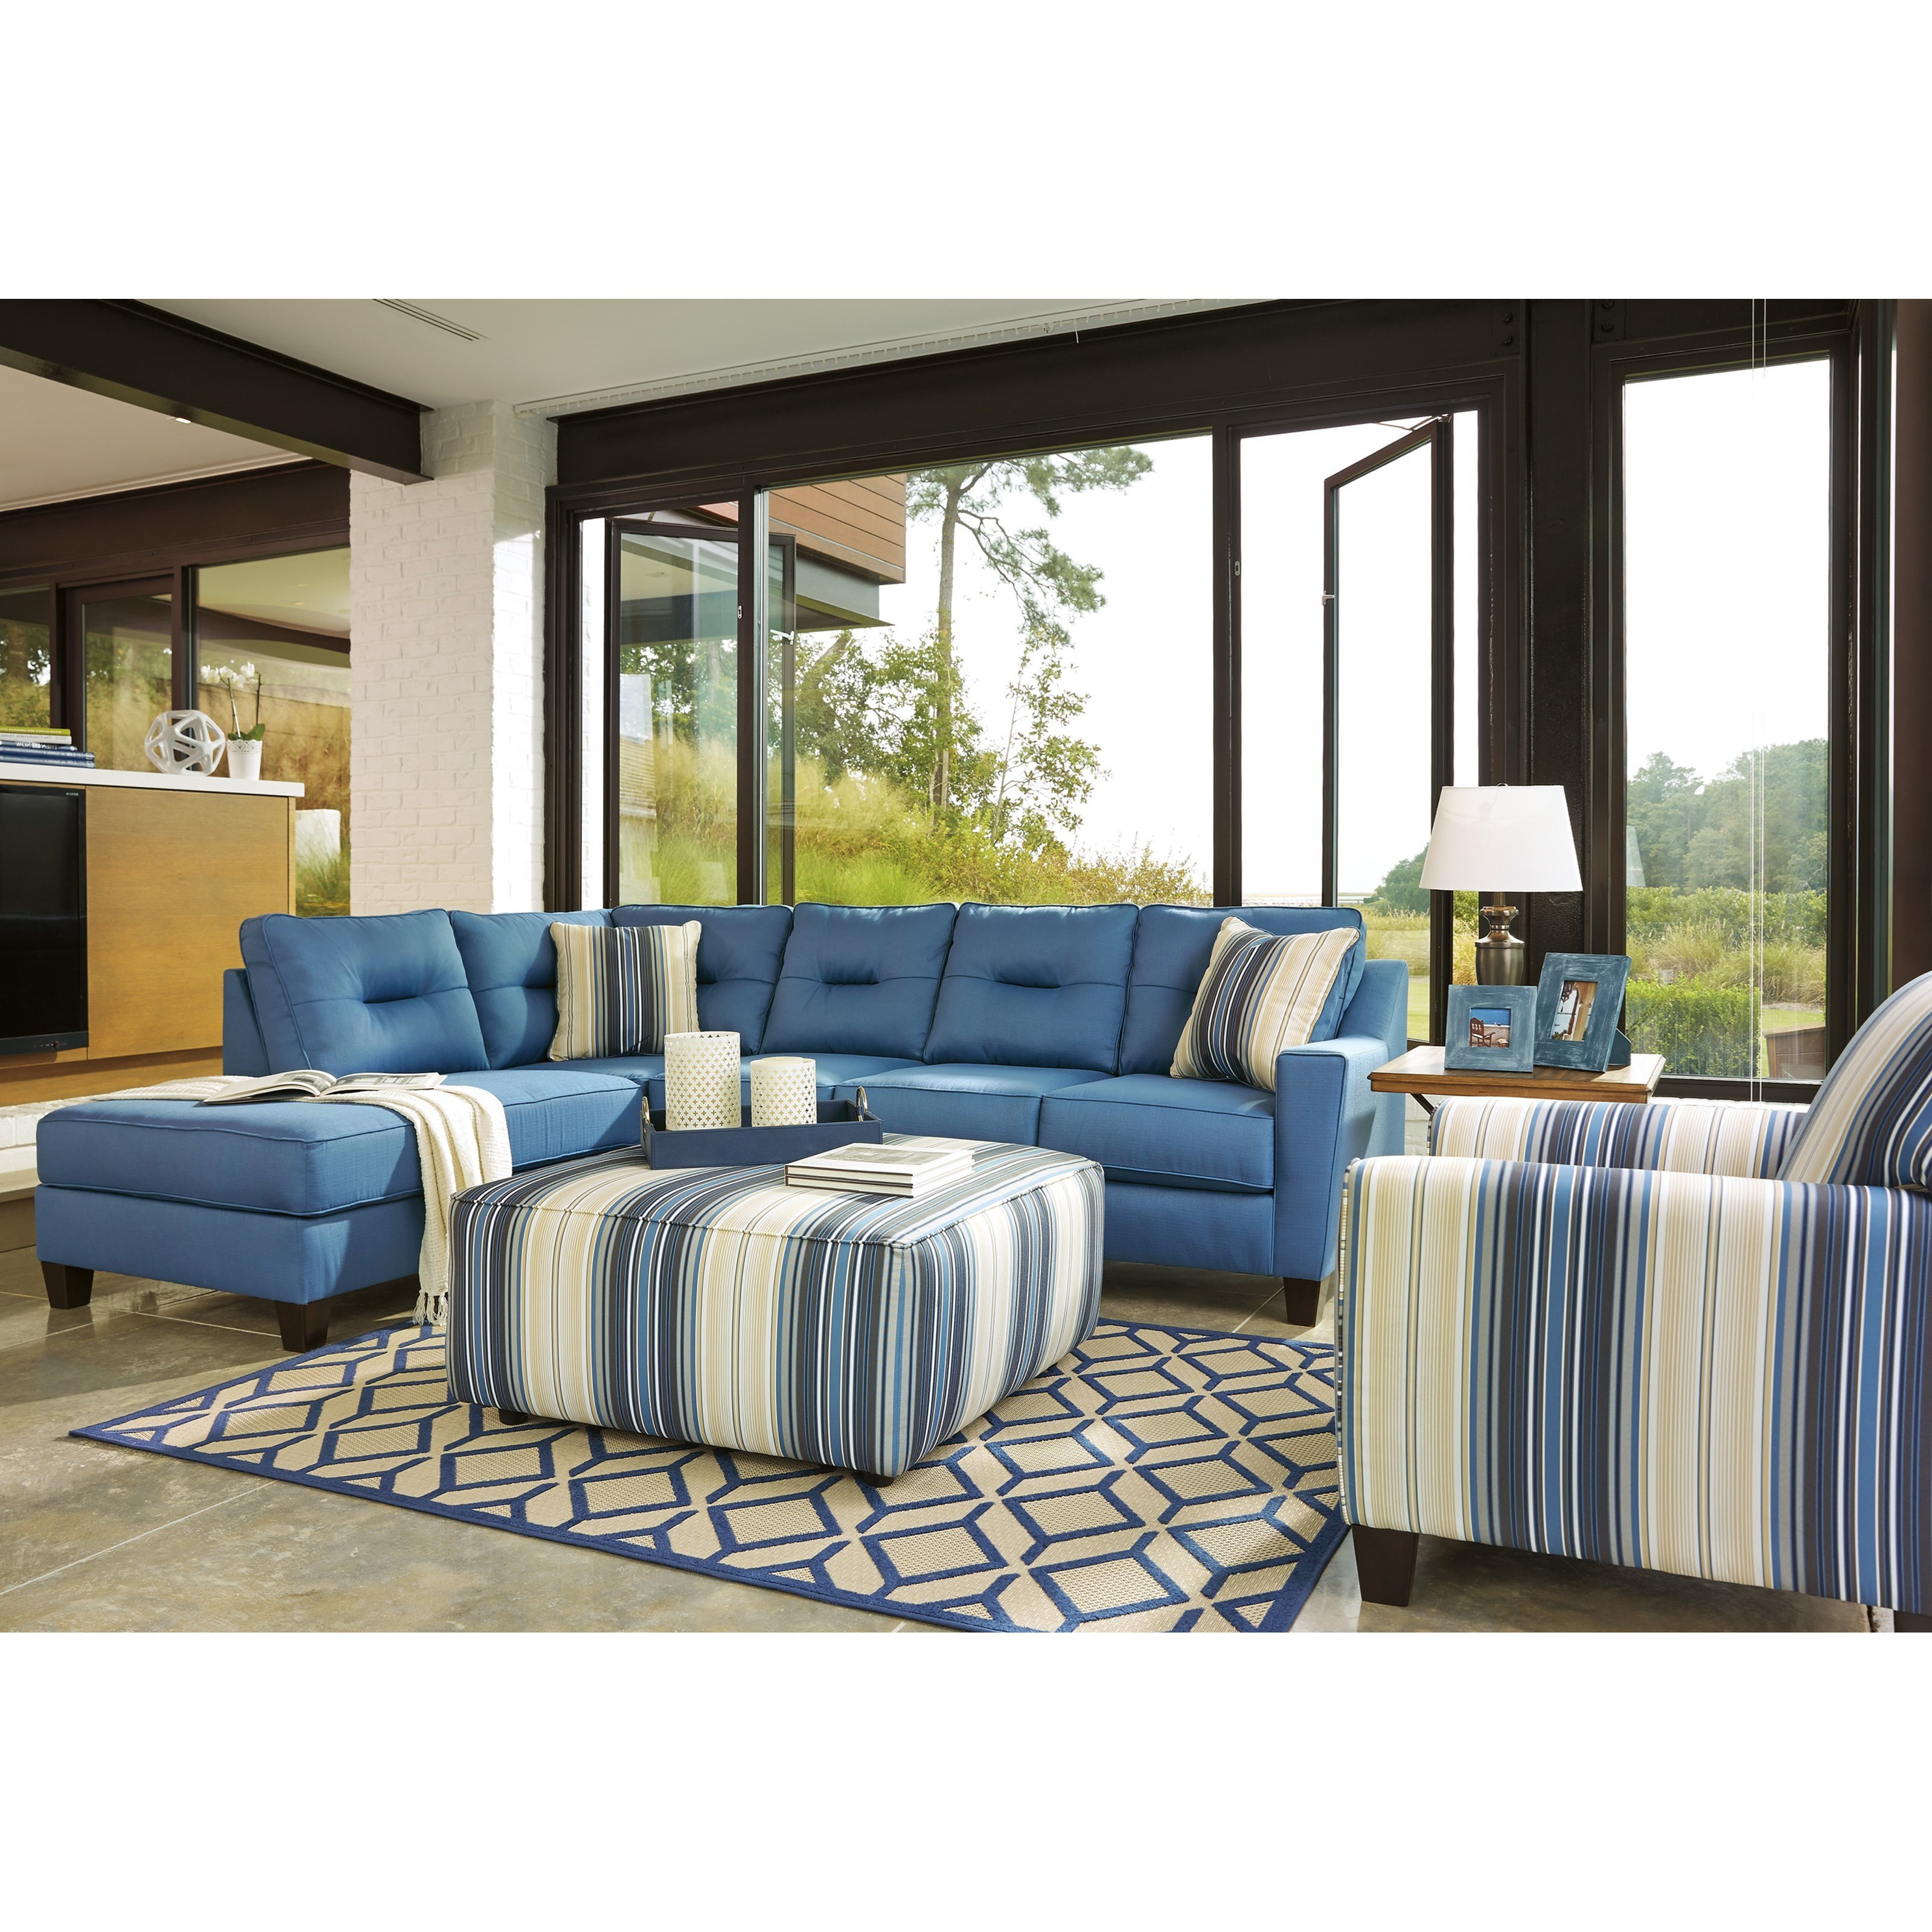 Benchcraft Kirwin Nuvella Stationary Living Room Group Value City Furniture Stationary